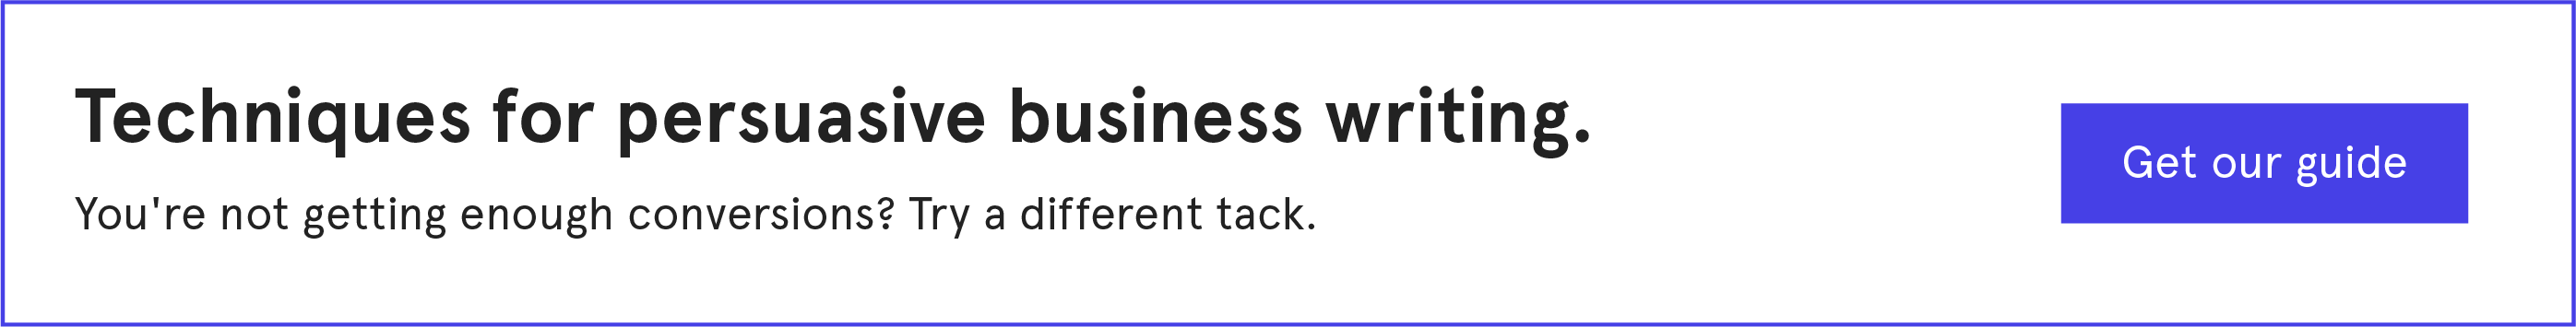 Learn these techniques for persuasive business writing - get the guide